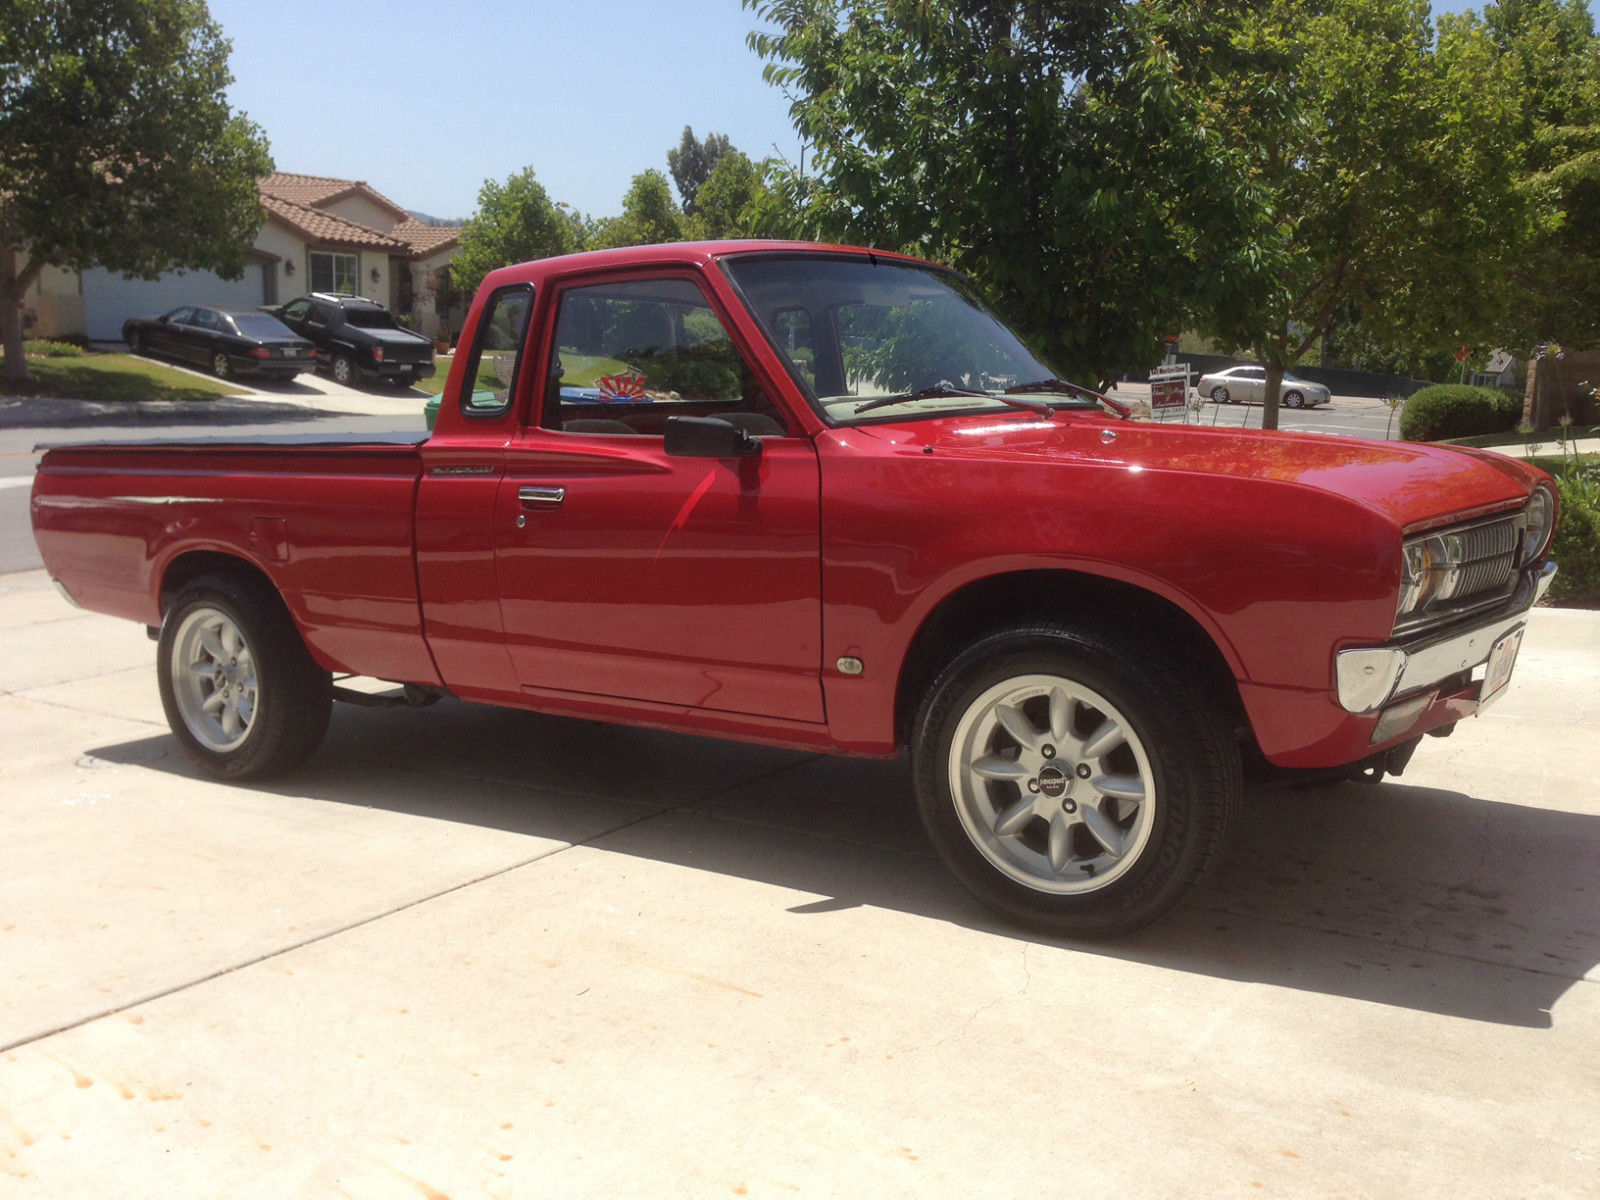 datsun 1979 pickup pl620 king cab custom one of a kind 510 240 for